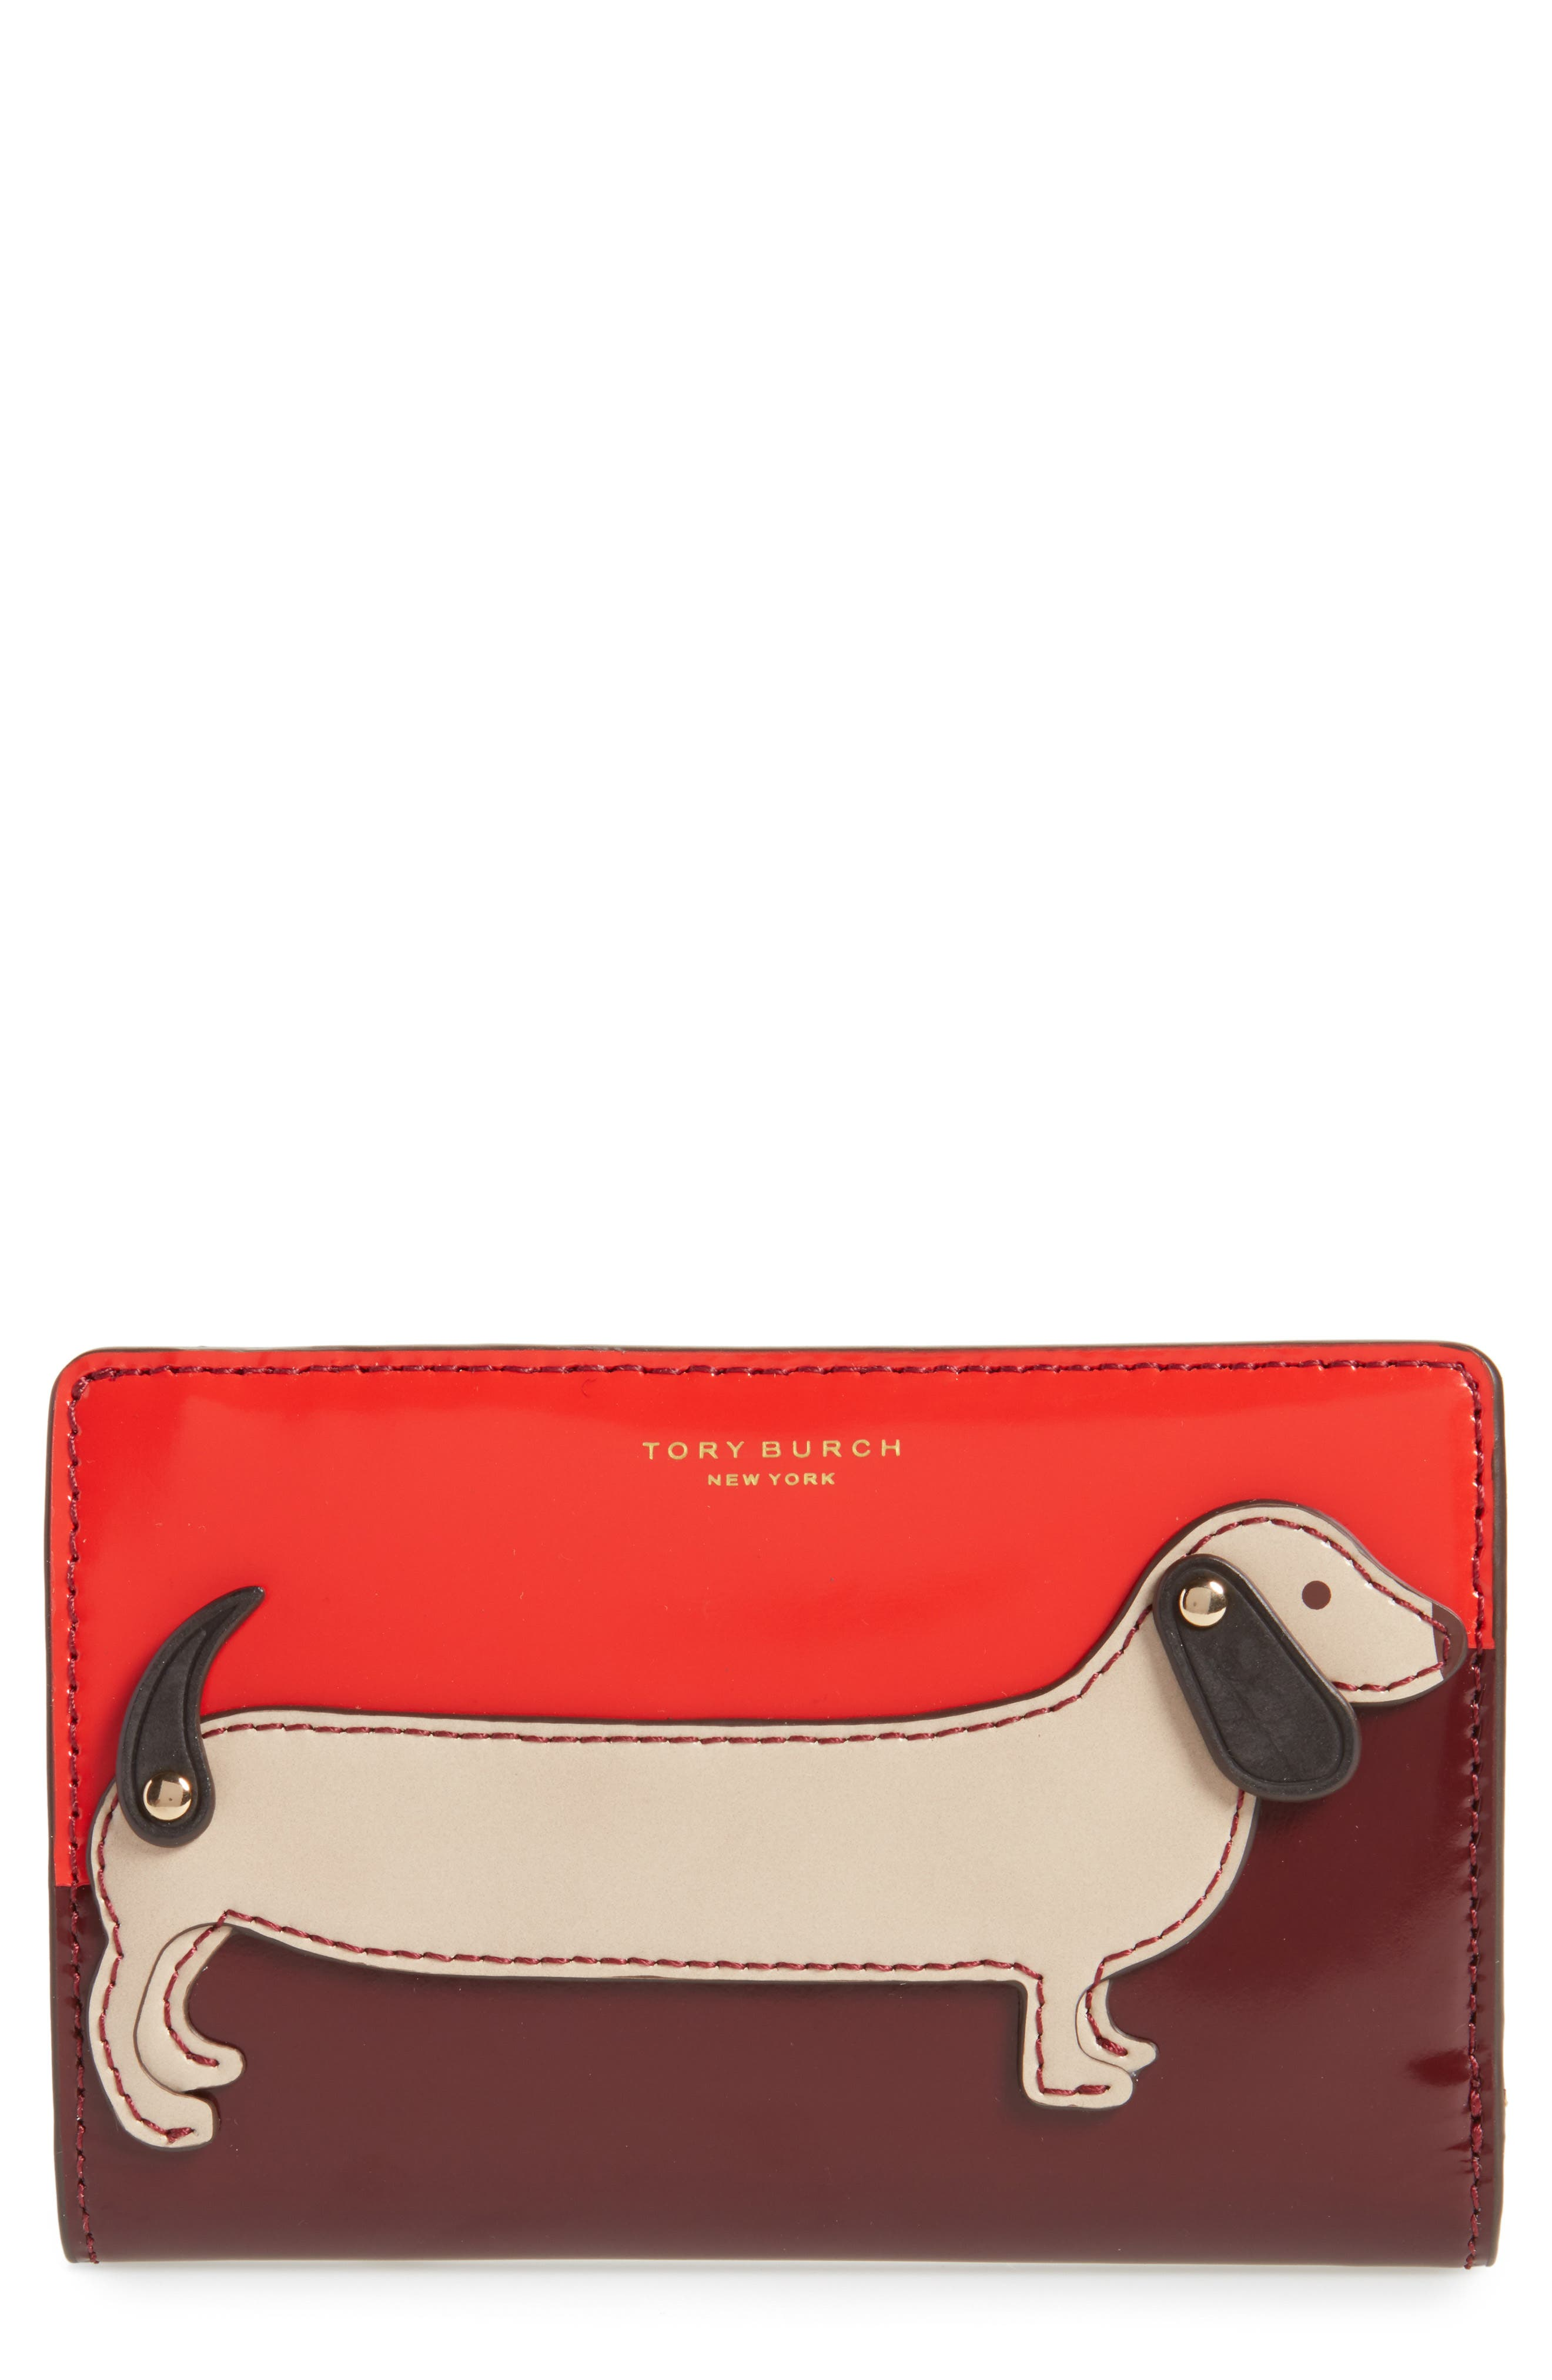 Medium McGraw Dachshund Slim Leather Wallet,                             Main thumbnail 1, color,                             Liberty Red